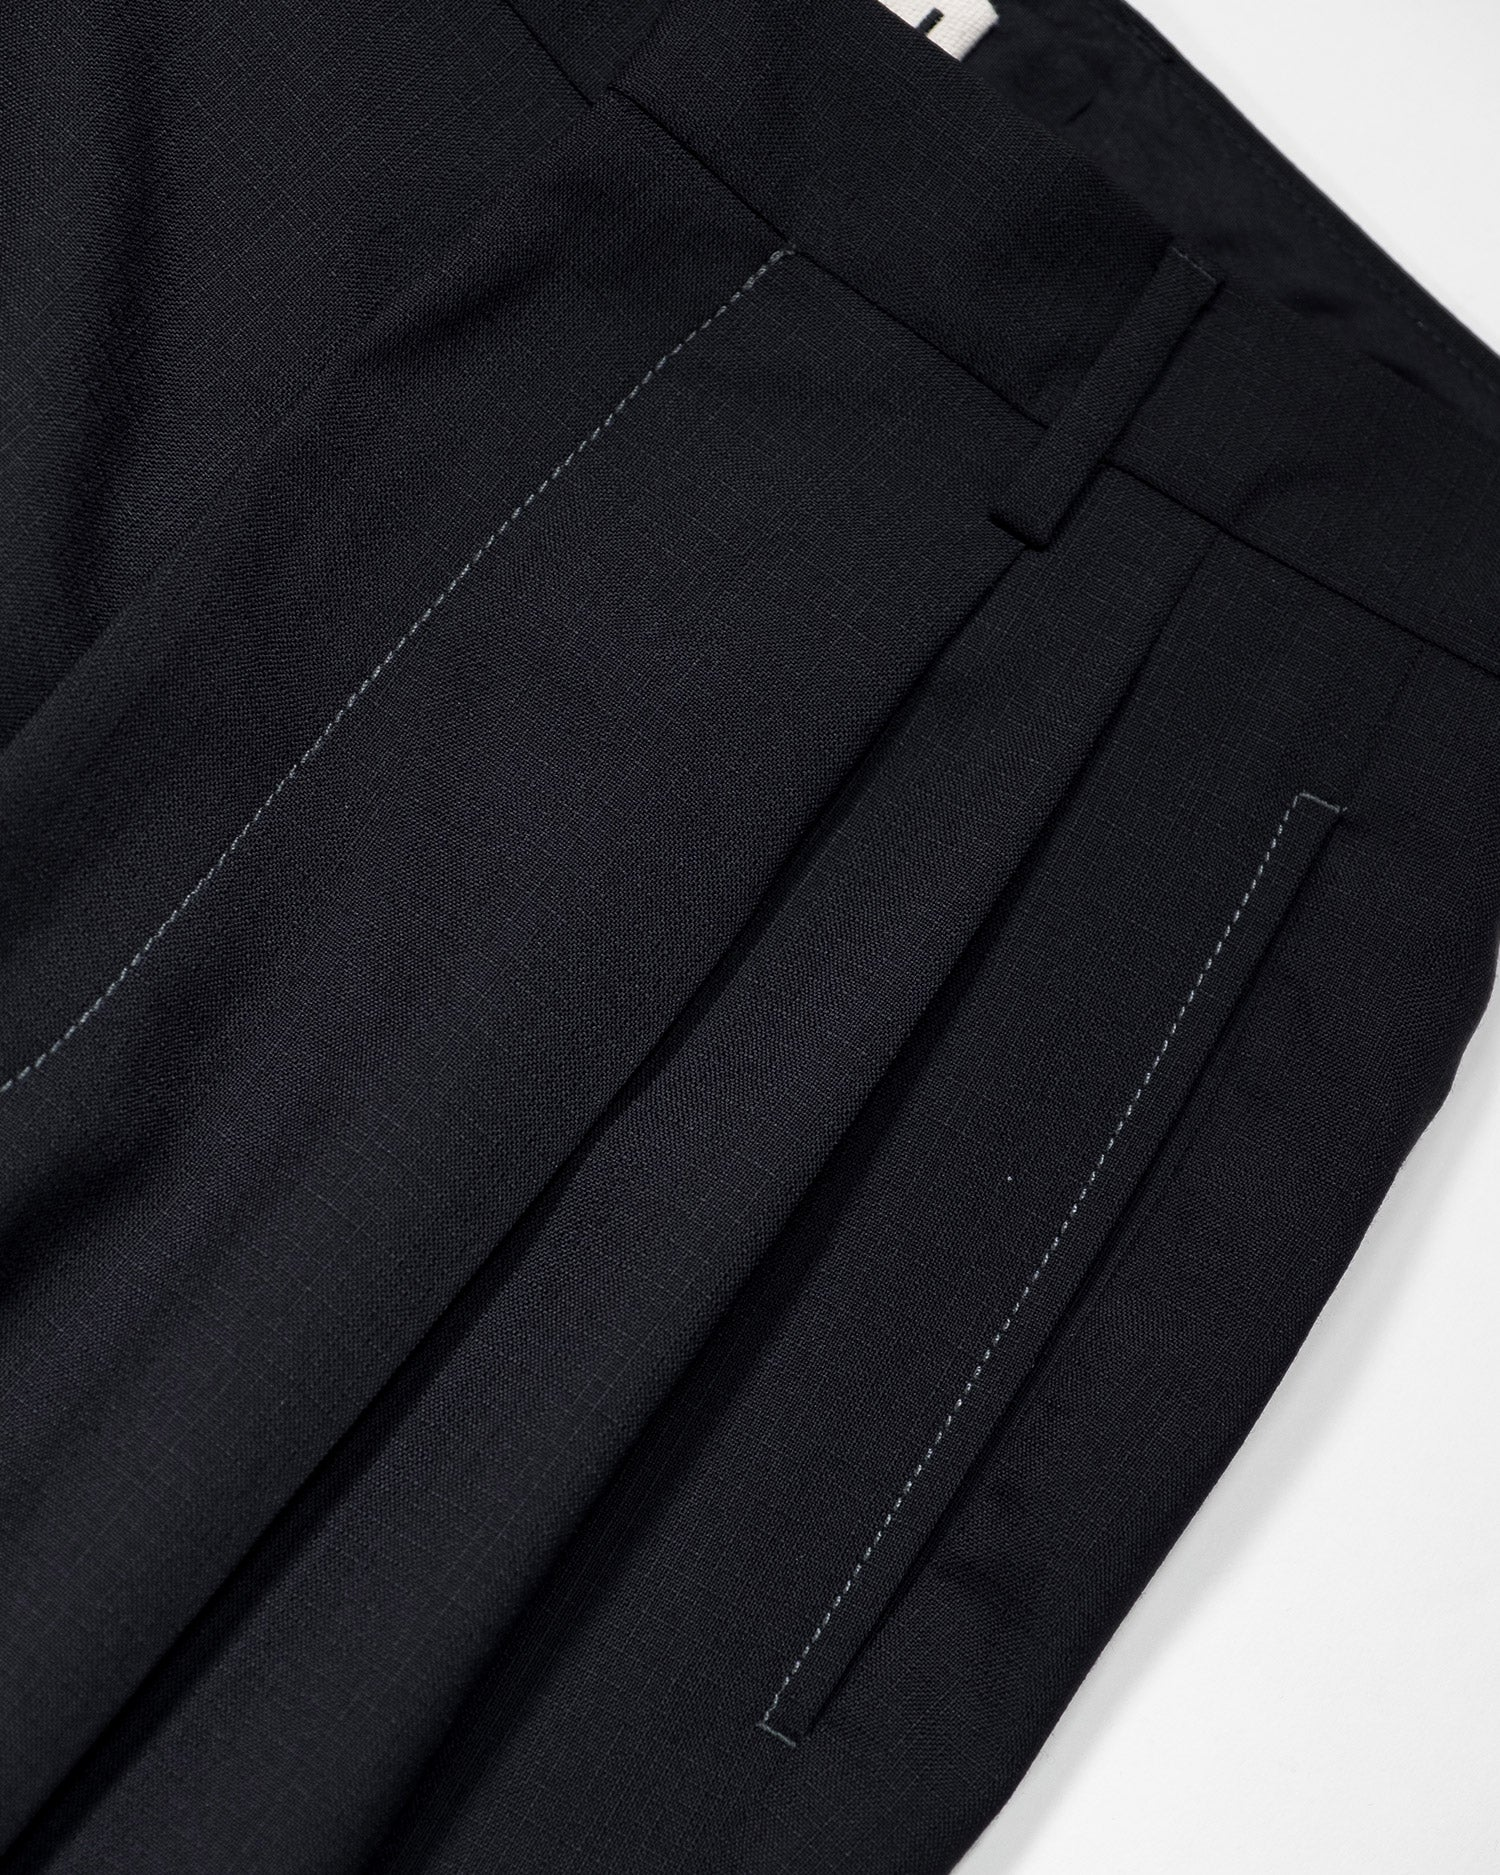 Marni Fresco Pleated Trousers